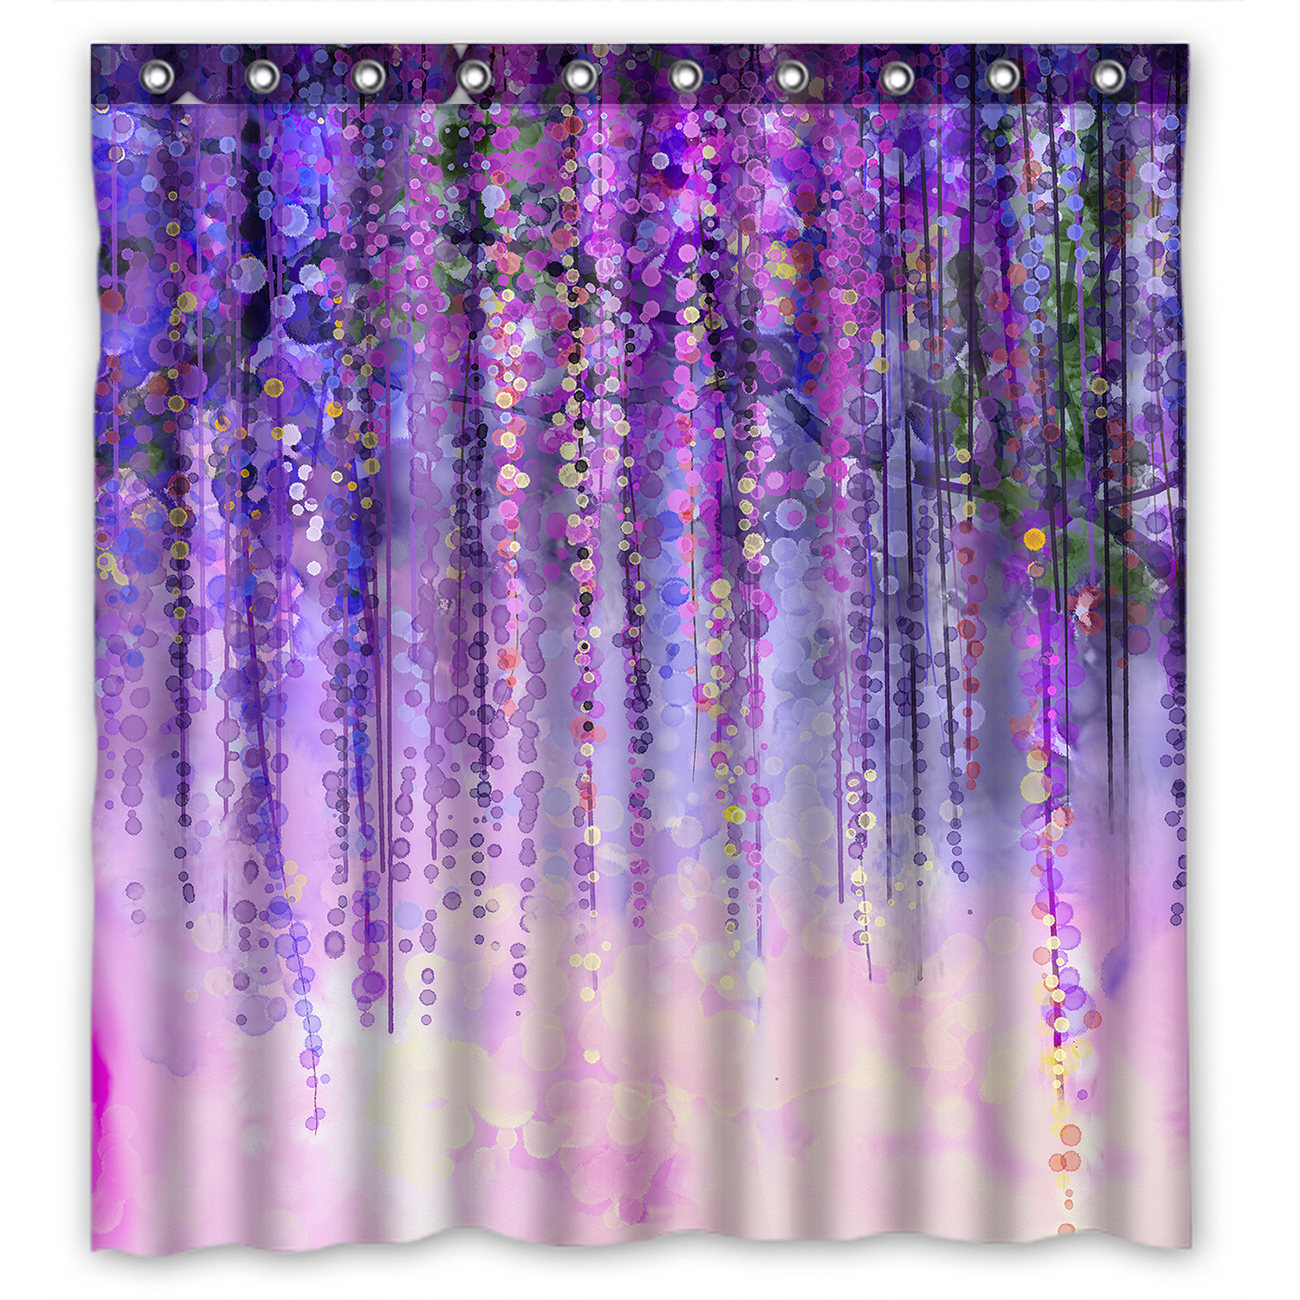 YKCG Wisteria Flowers Tree Purple Violet Floral Waterproof Fabric Bathroom  Shower Curtain 66x72 Inches